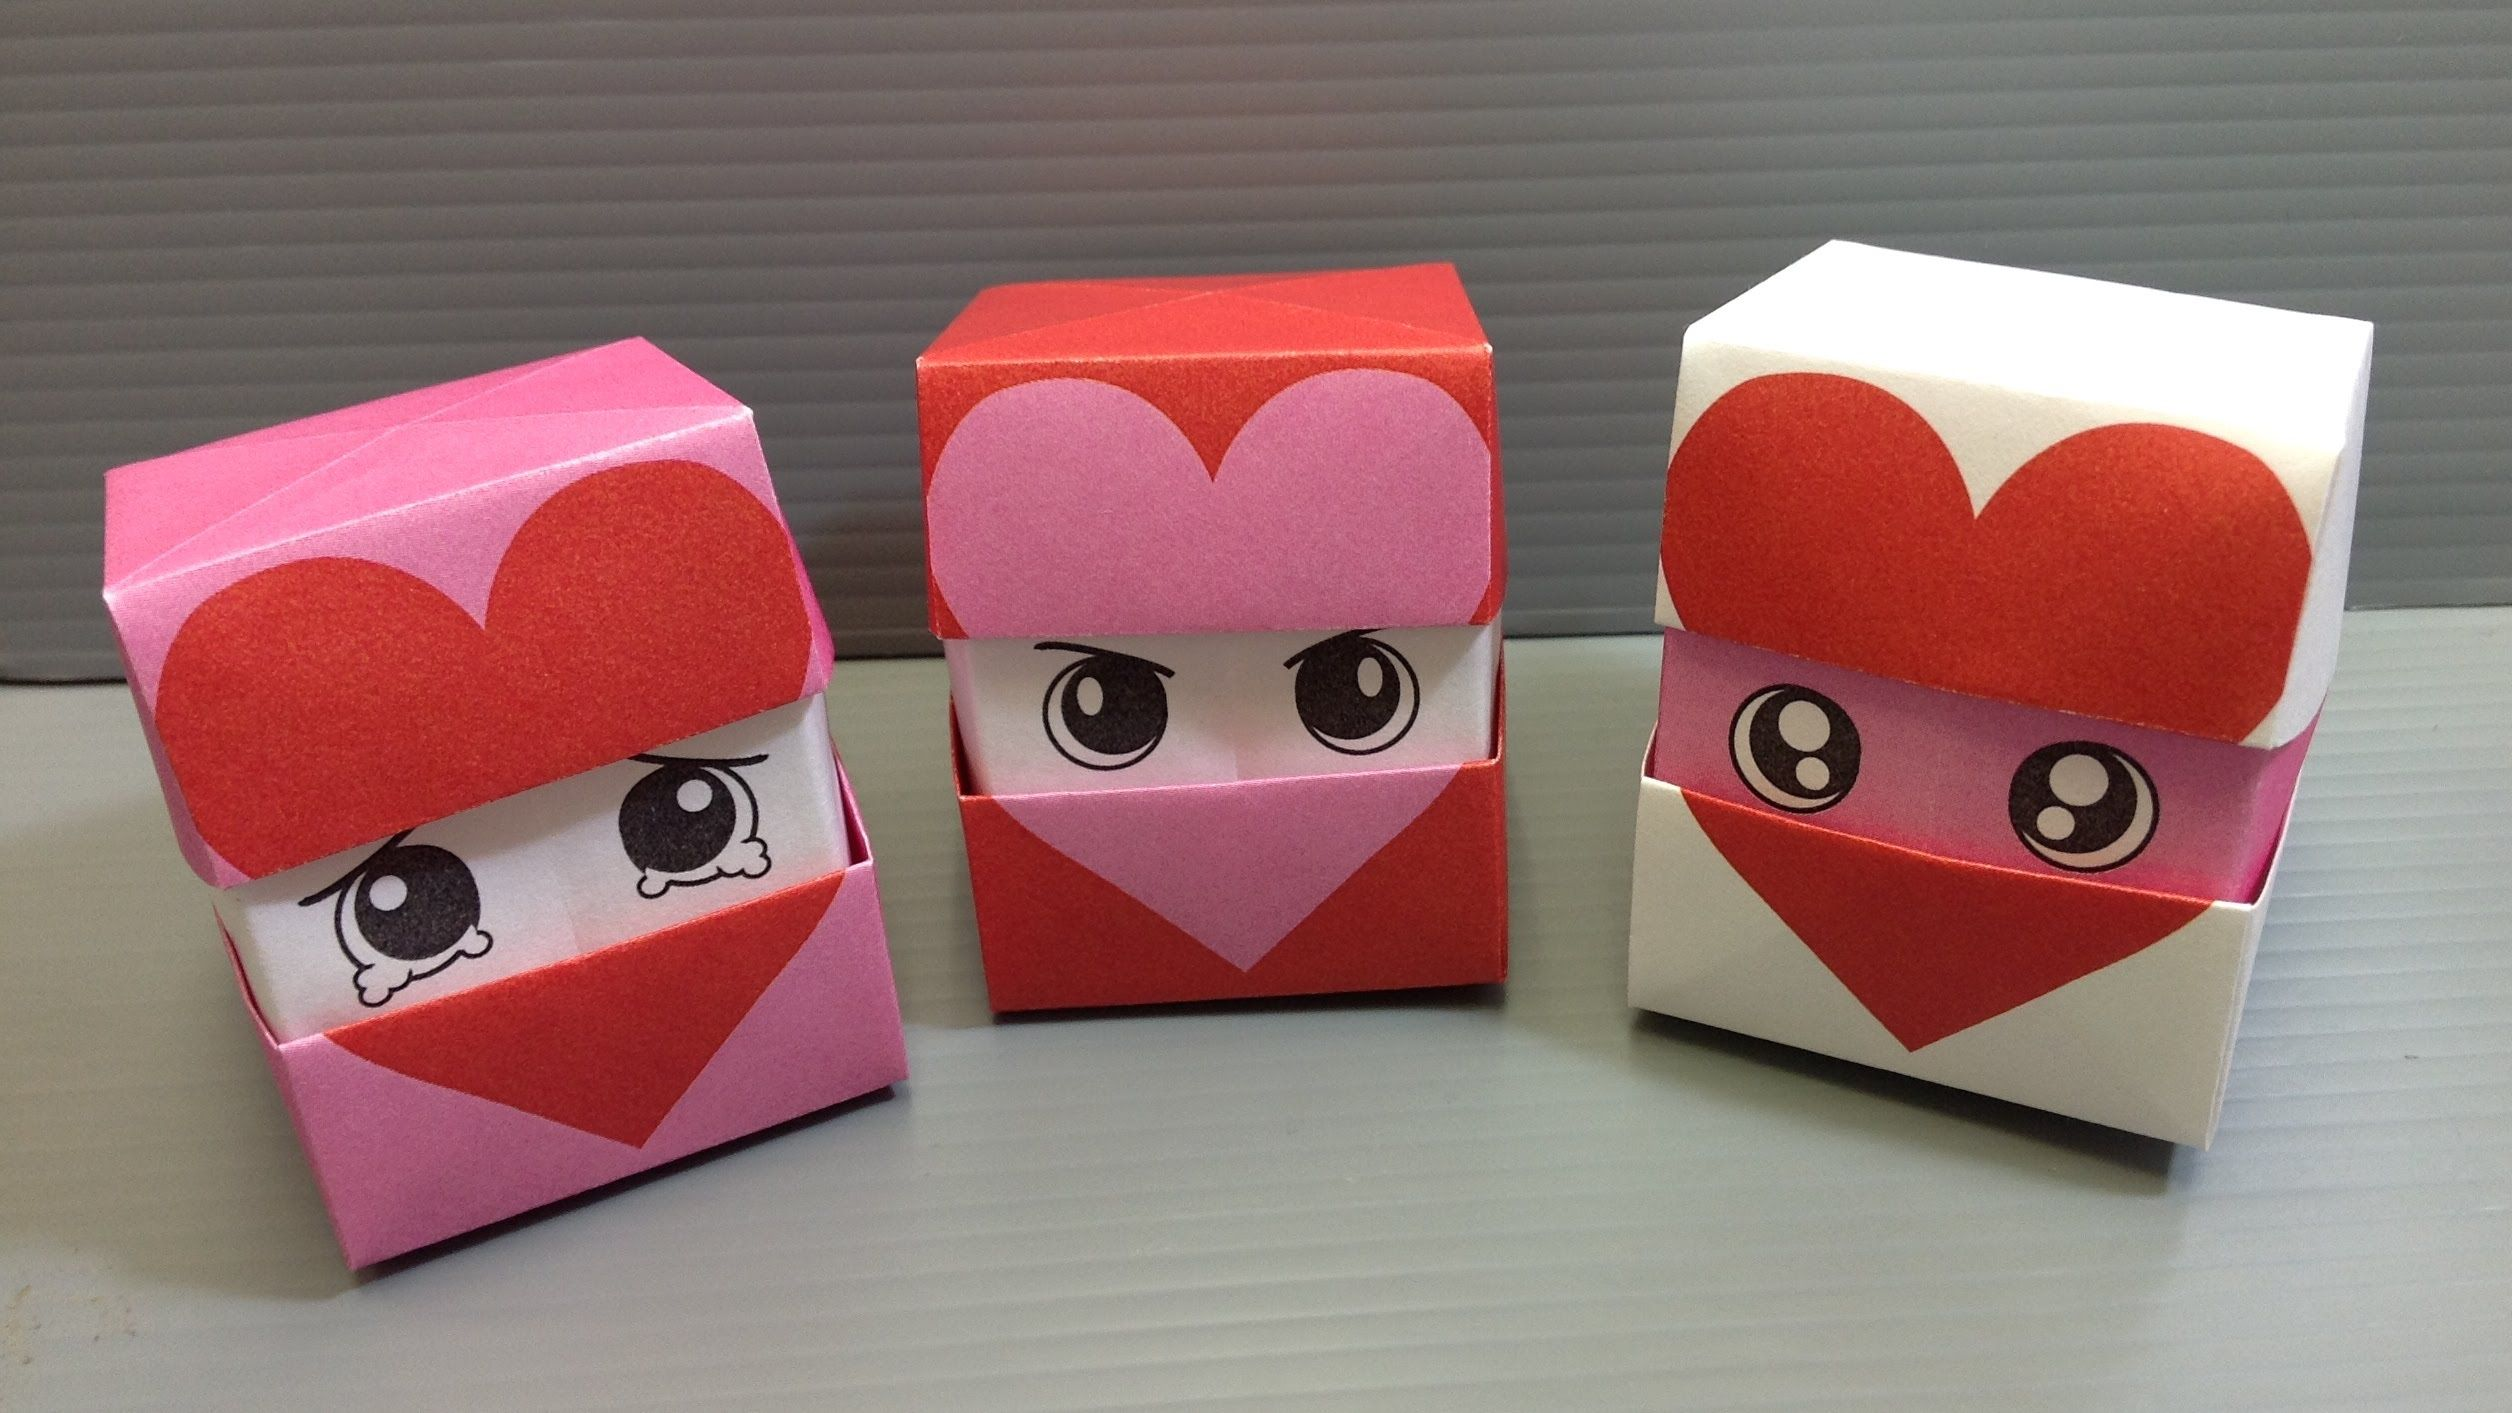 Origami Changing Faces Heart Cube Print At Home Valentines Origami Origami Box Tutorial Origami Box